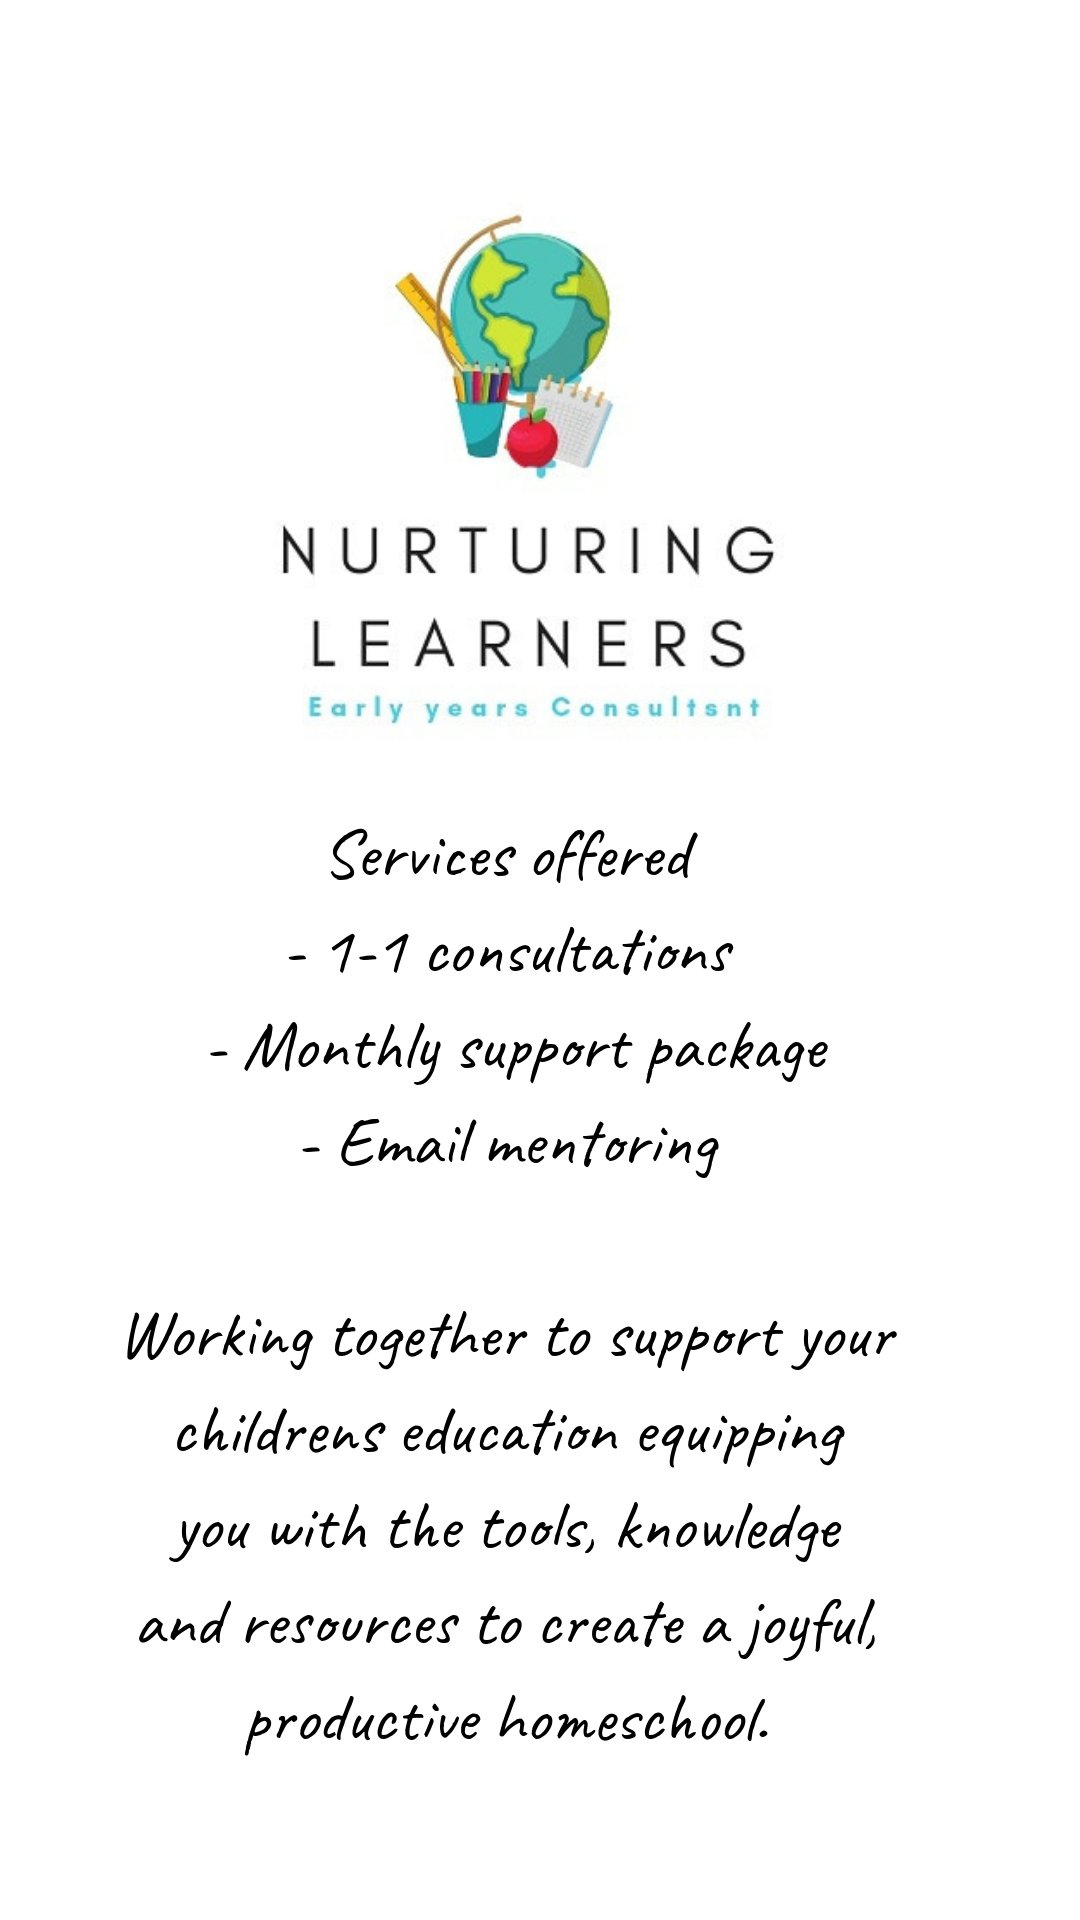 Nurturing Learners list of services